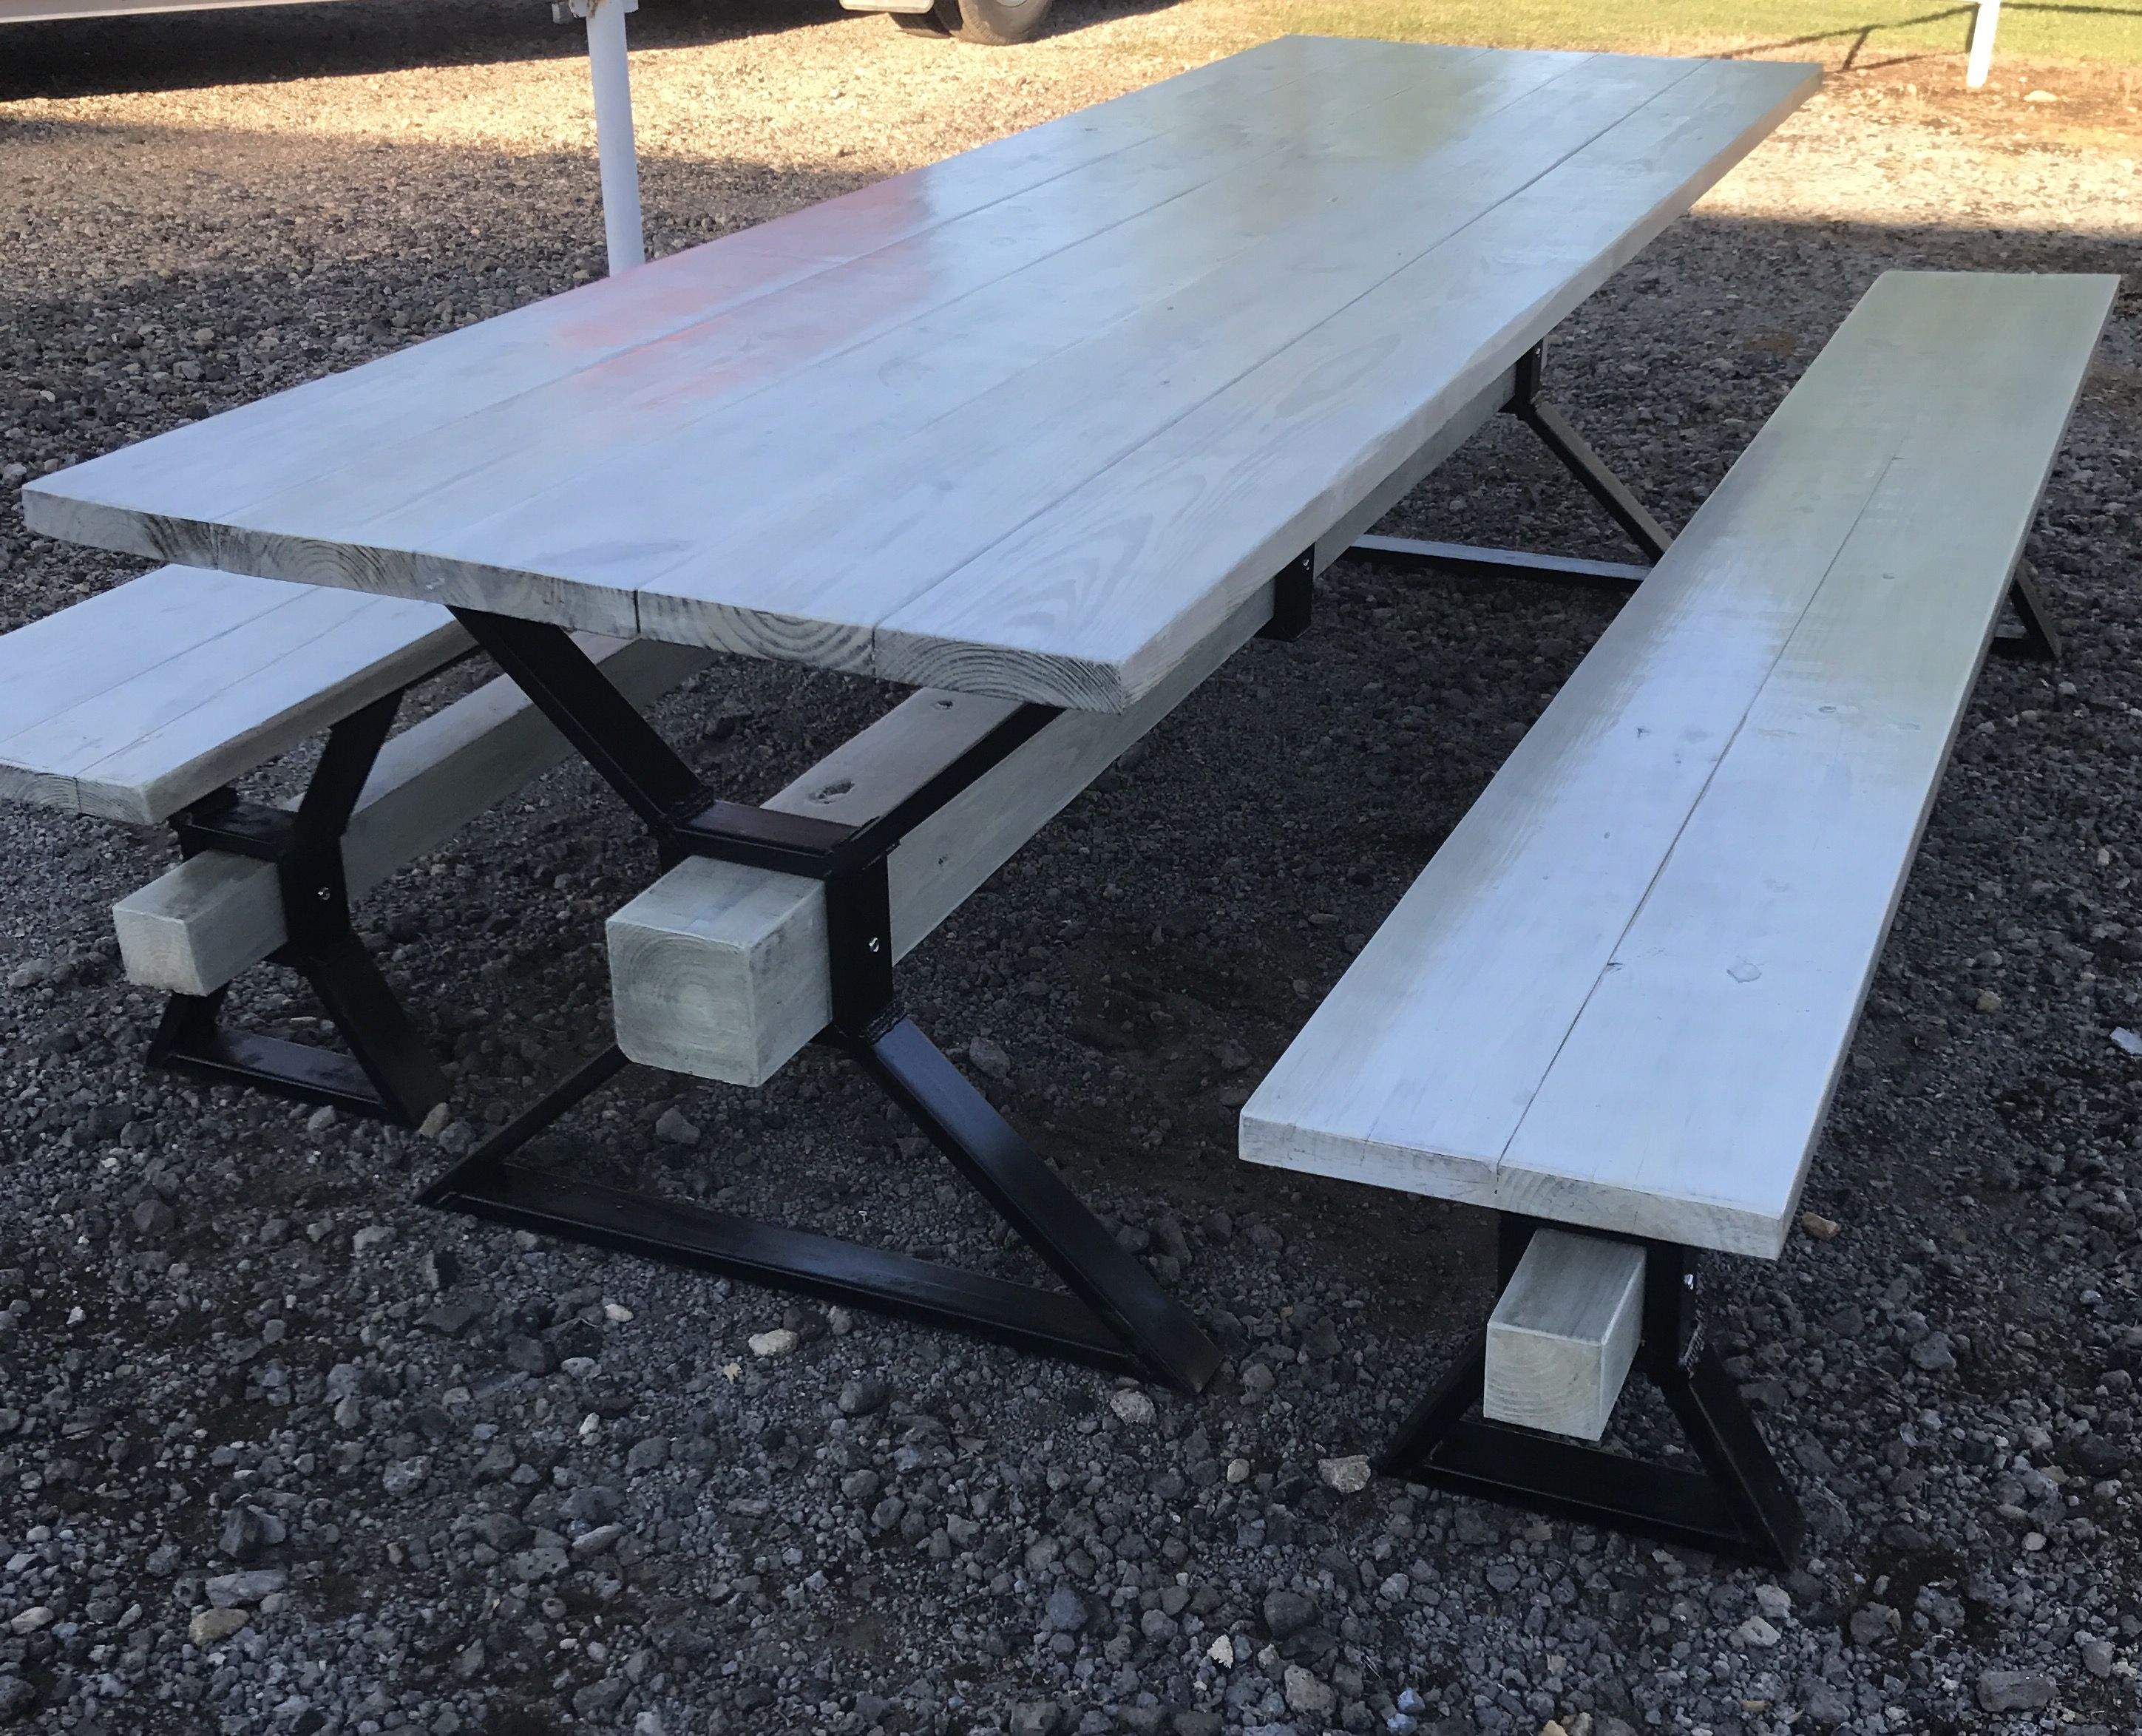 Metal Frame Picnic Table Projects Pinterest Picnic Tables - Stainless steel picnic table